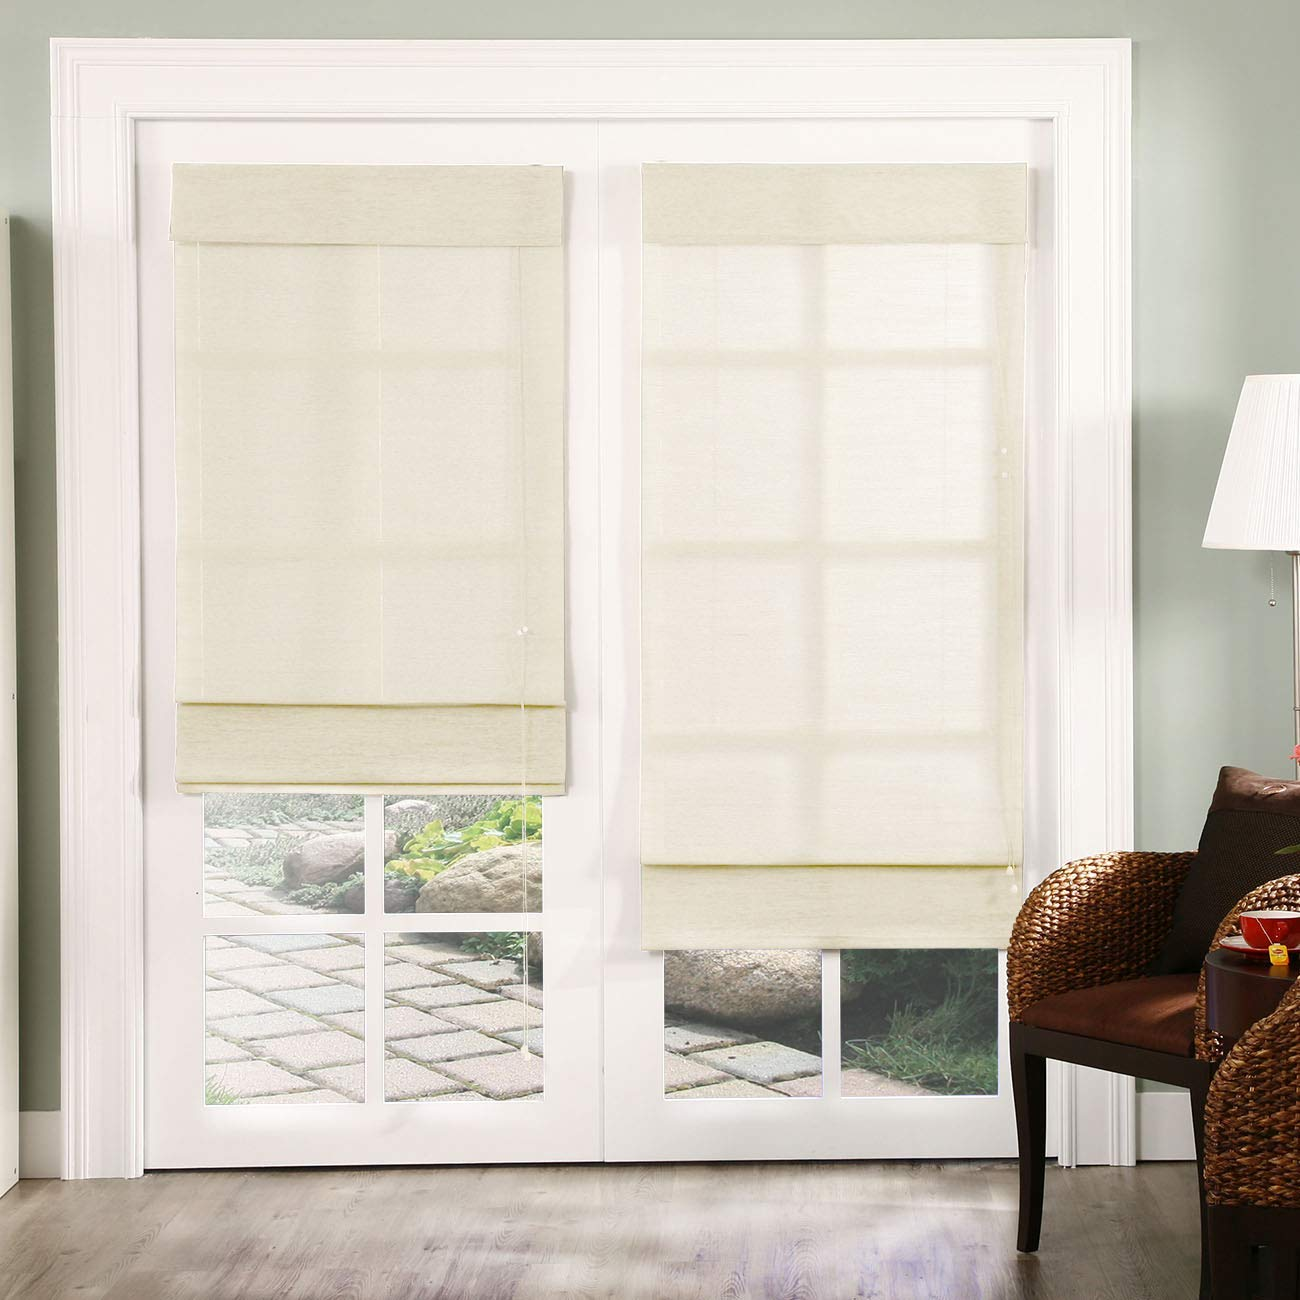 Chicology Standard Cord Lift Shades